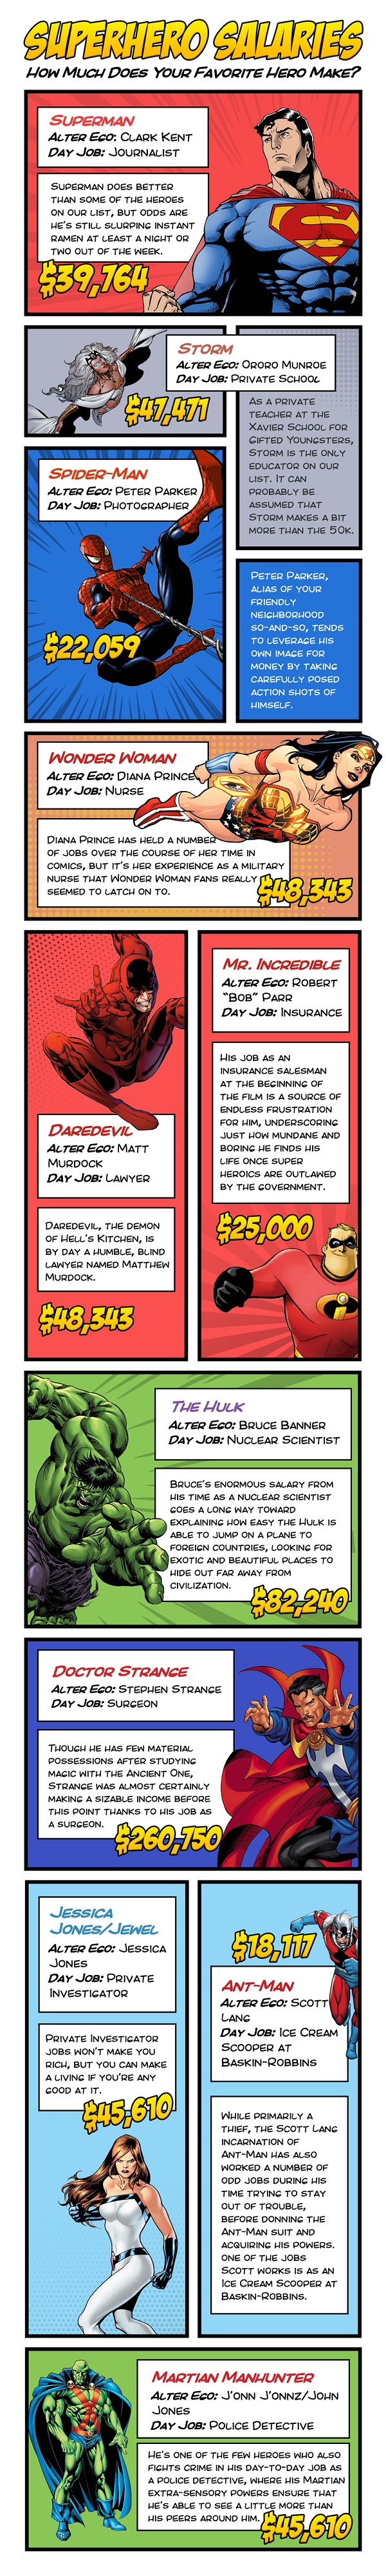 Superheroes-Infographic